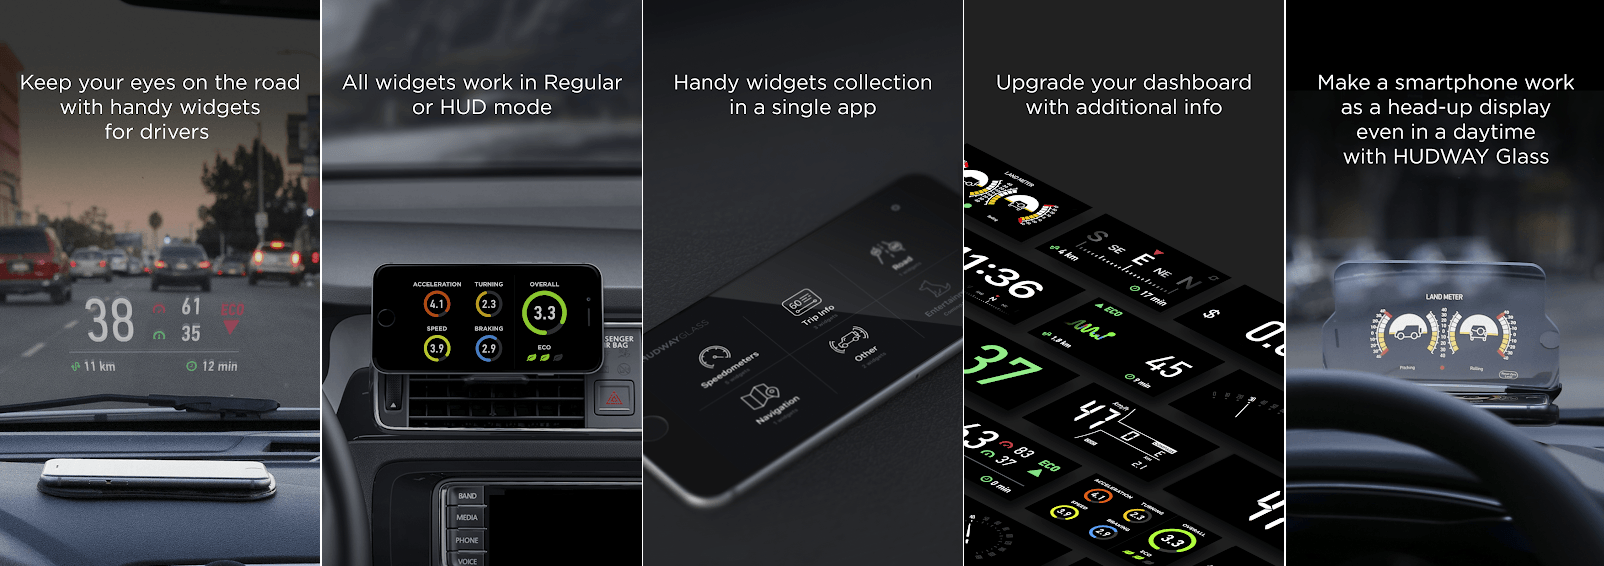 HUD Widgets - Driver Assist App